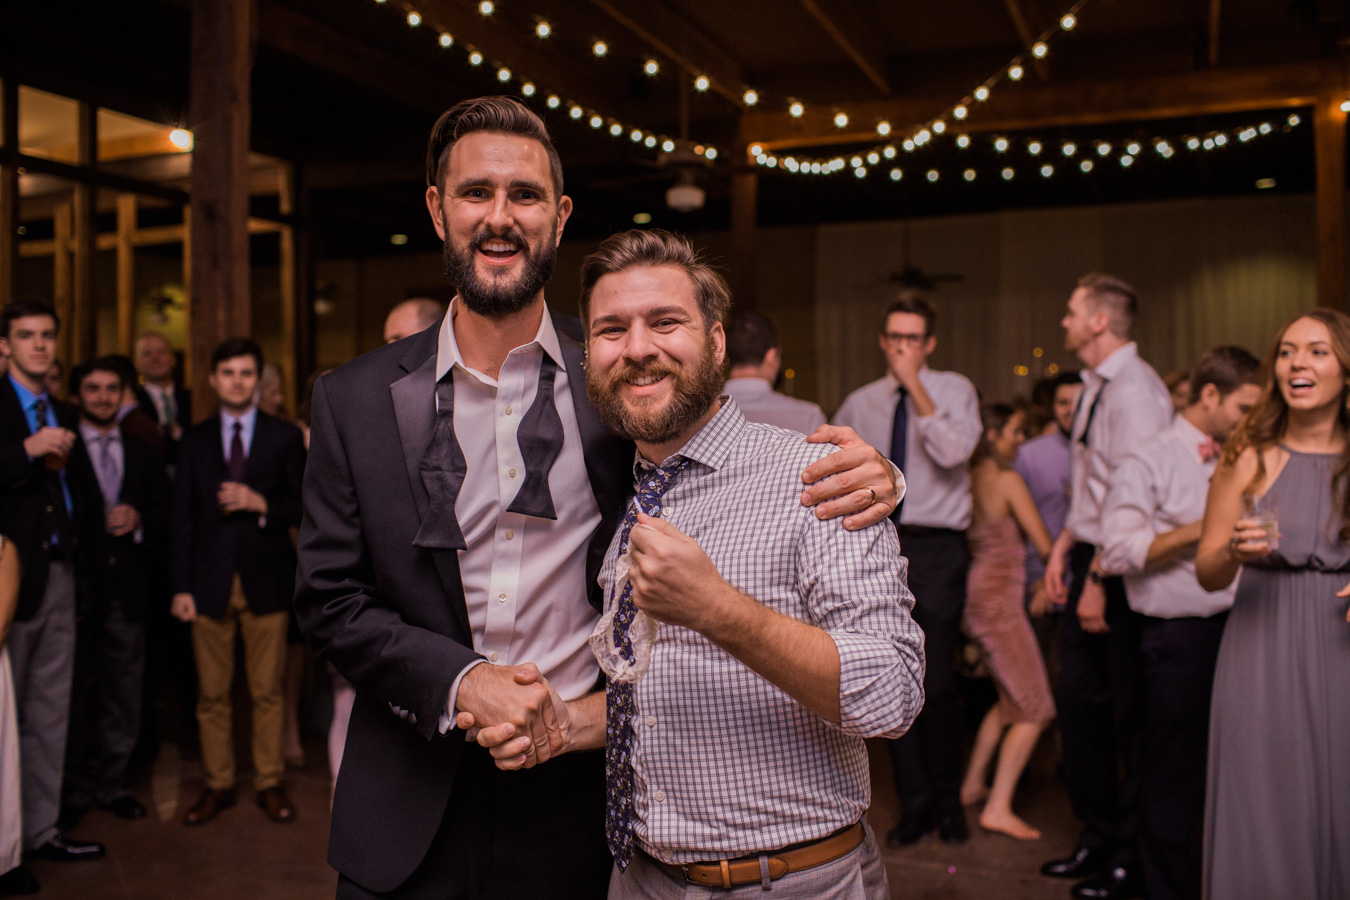 Maddy and Devin Voelter Wedding  (52 of 112).jpg